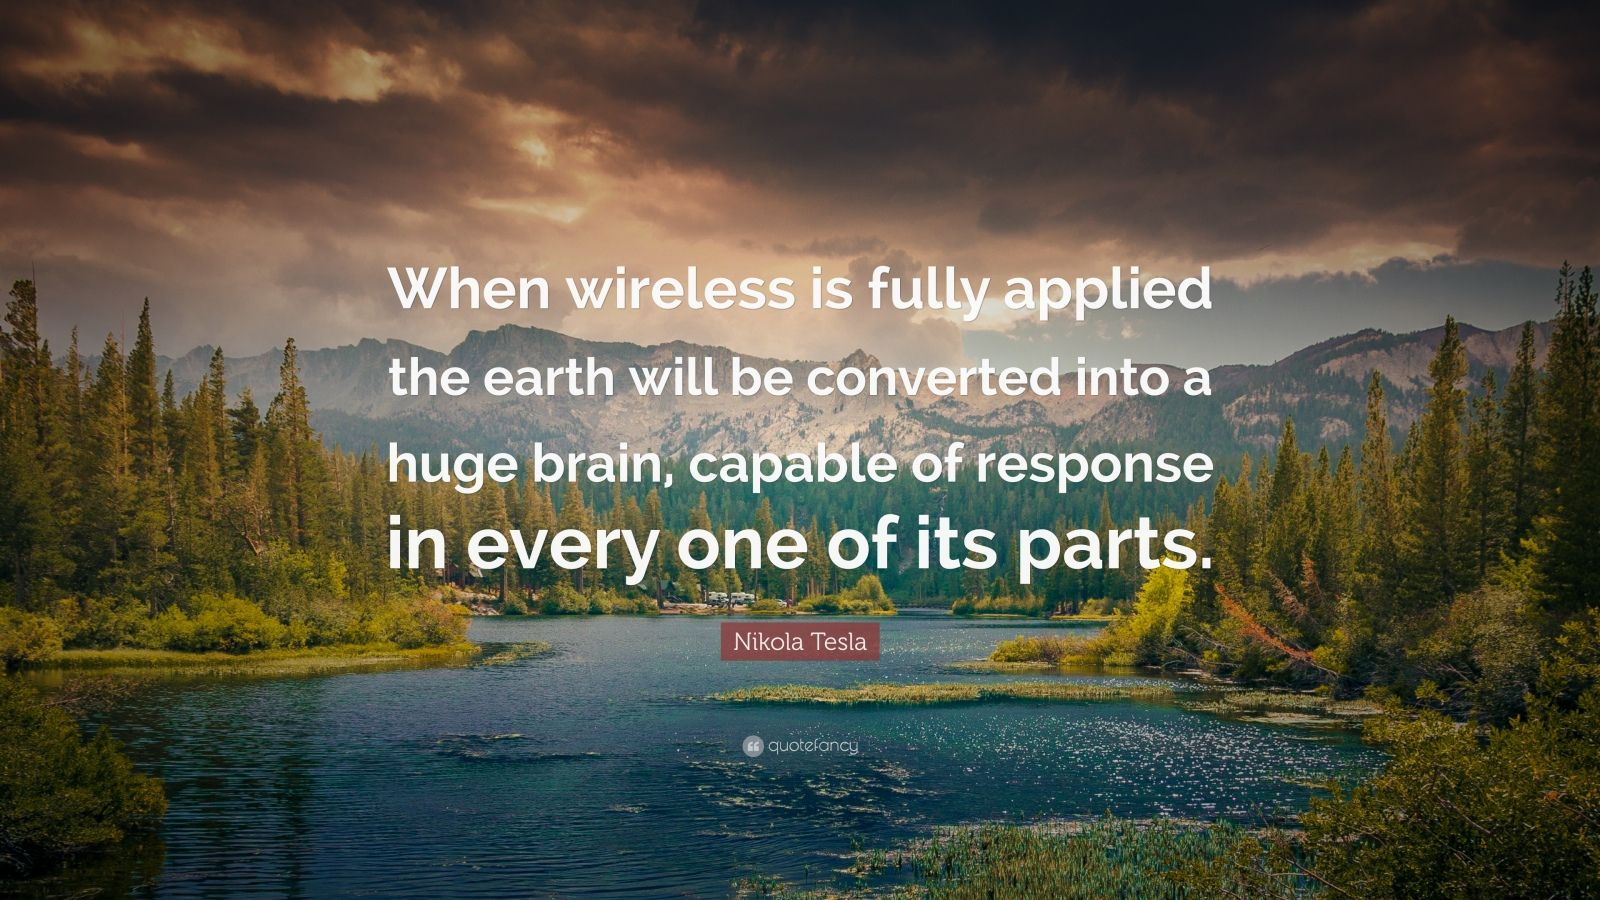 """Nikola Tesla Quote: """"When wireless is fully applied the earth will be converted into a huge brain, capable of response in every one of its parts."""""""